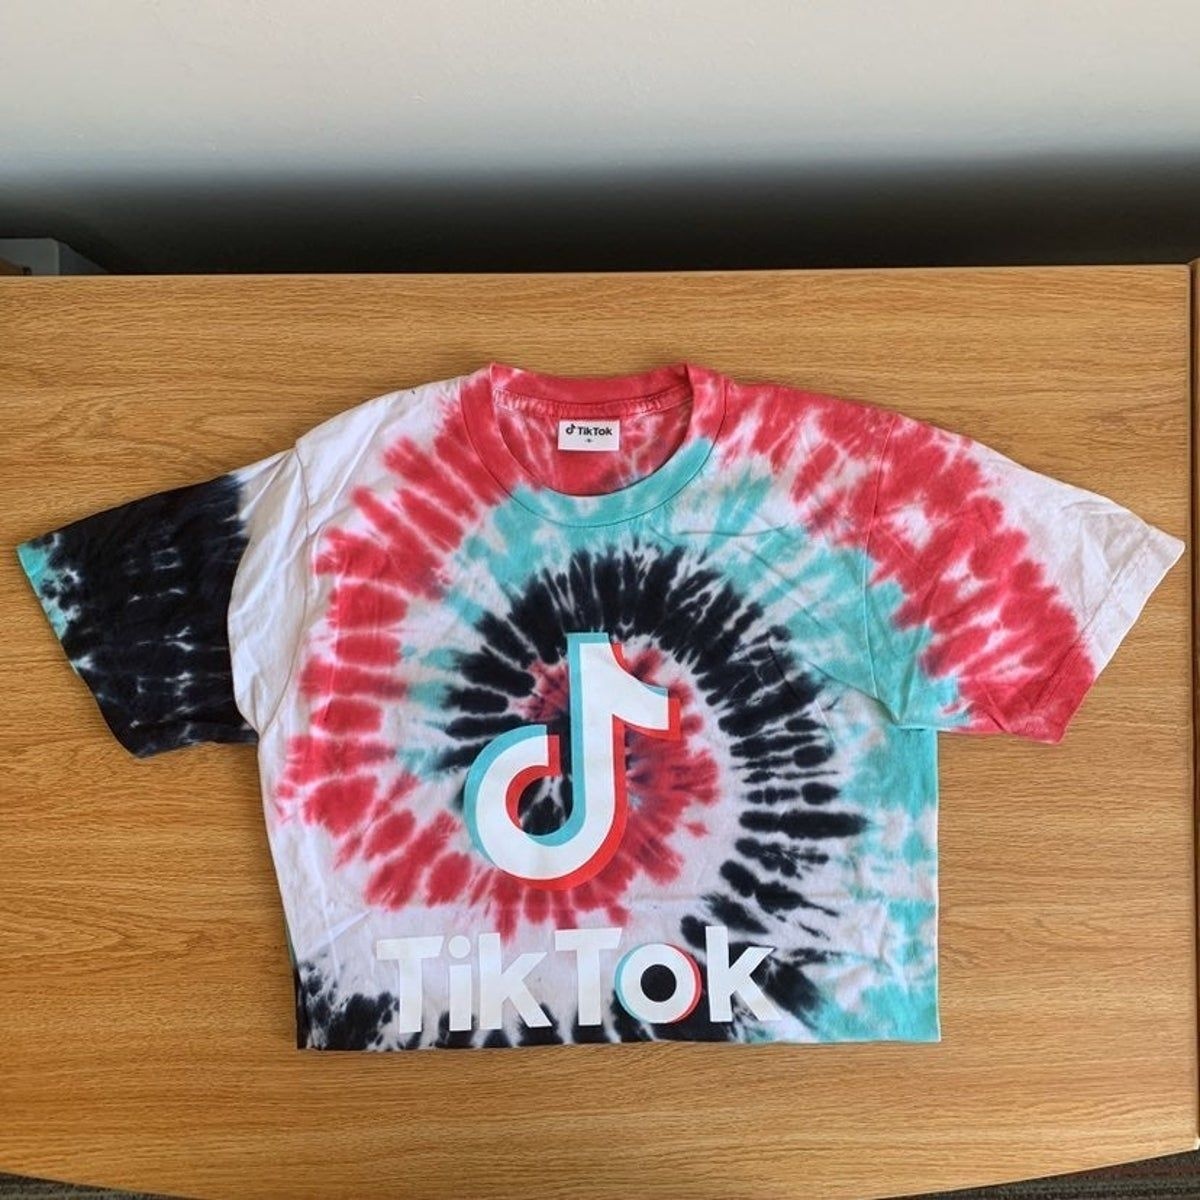 Exclusive Limited Edition Tiktok Shirt Birthday Party Shirt Cute Outfits For Kids Birthday Party For Teens [ 1200 x 1200 Pixel ]